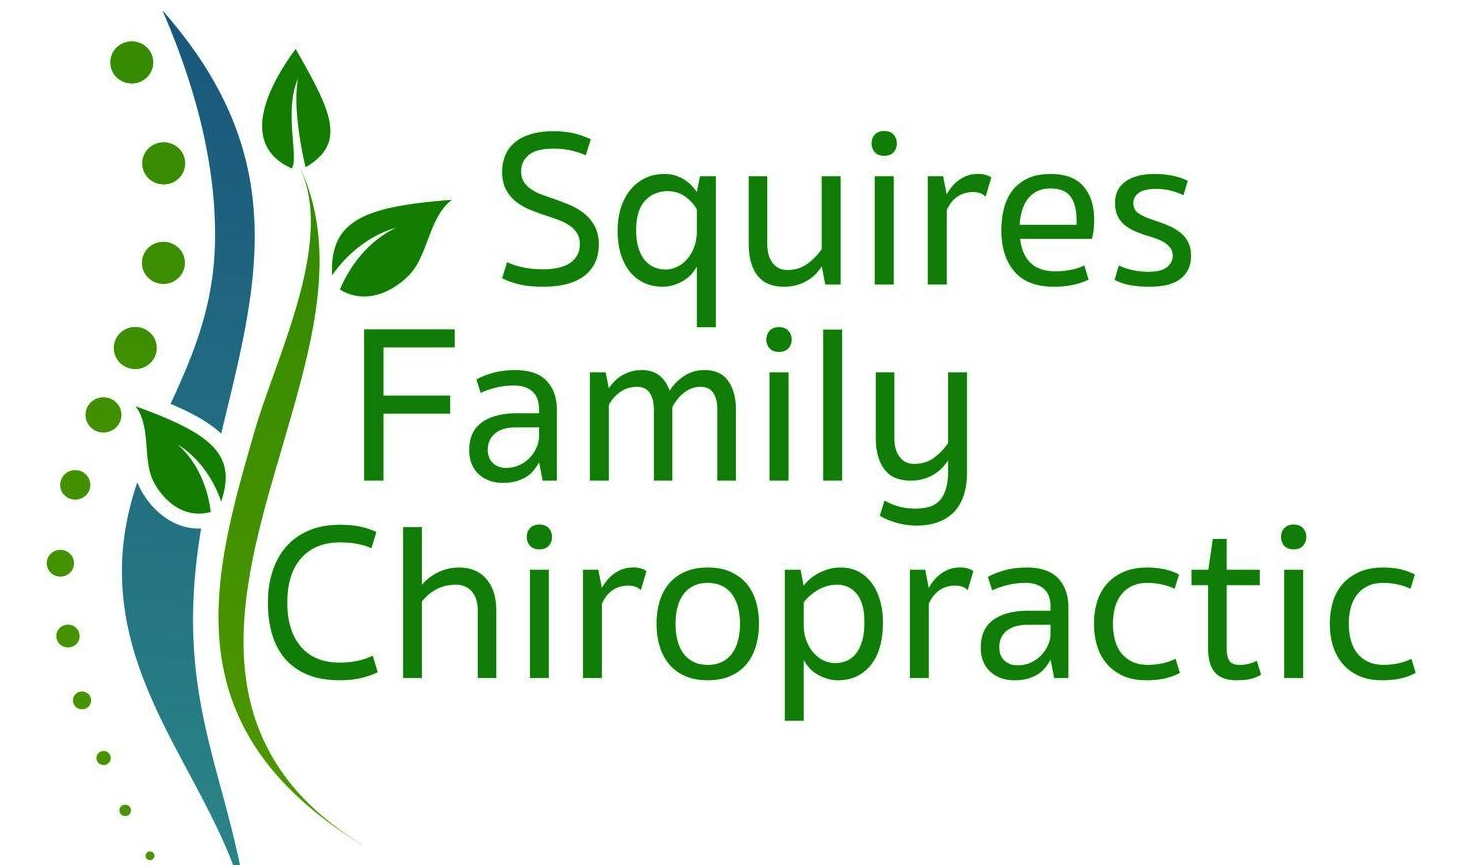 Squires Family Chiropractic